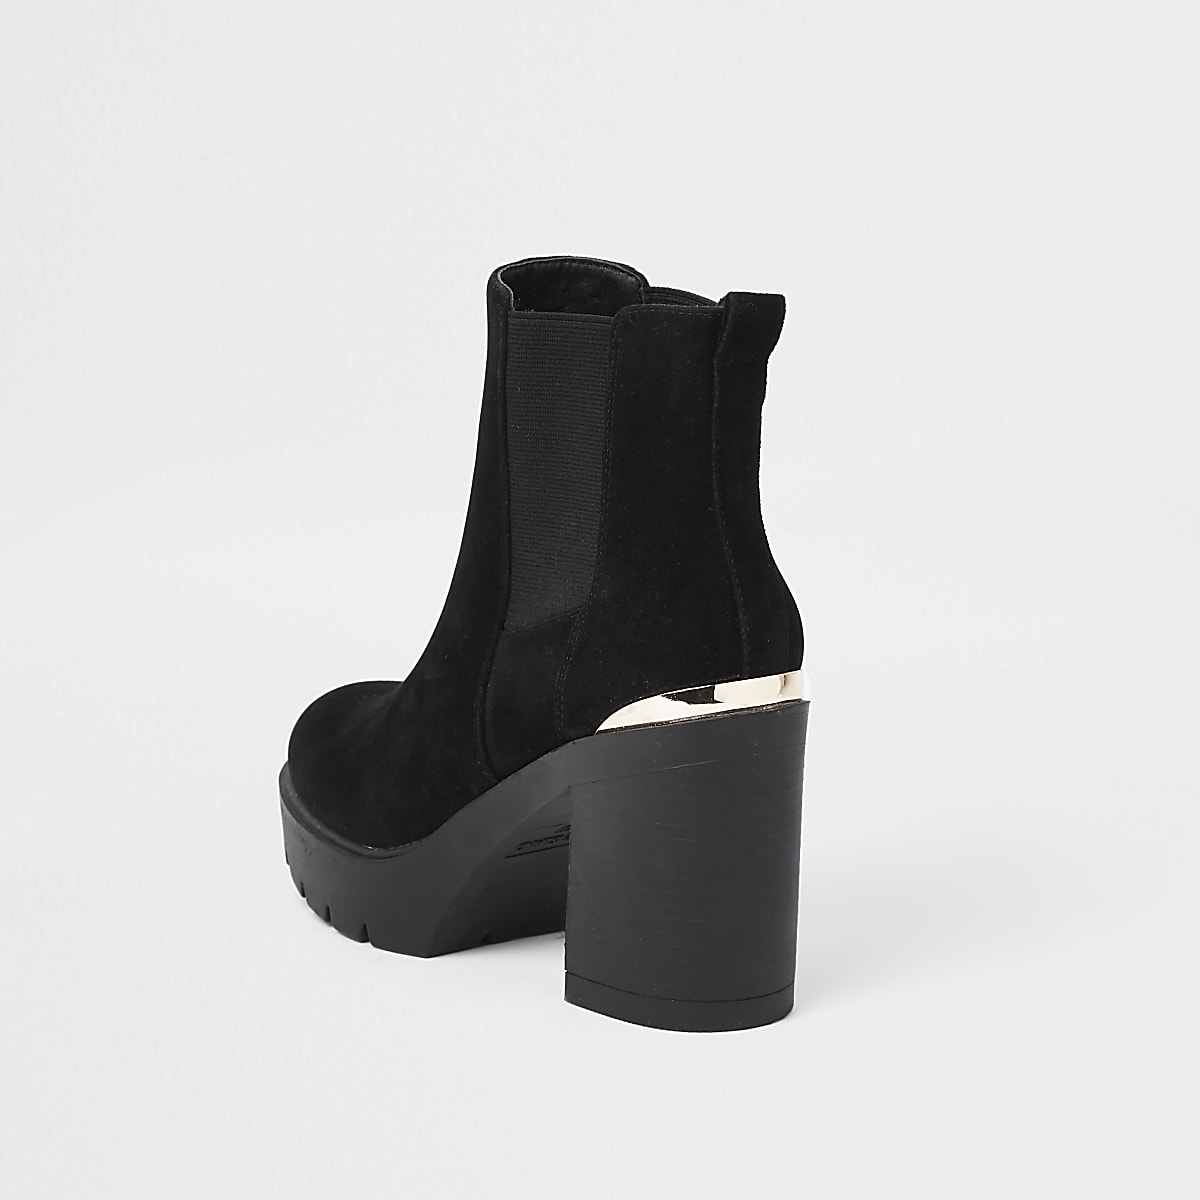 26a13cc9191b6 Black chunky chelsea boots - Boots - Shoes & Boots - women